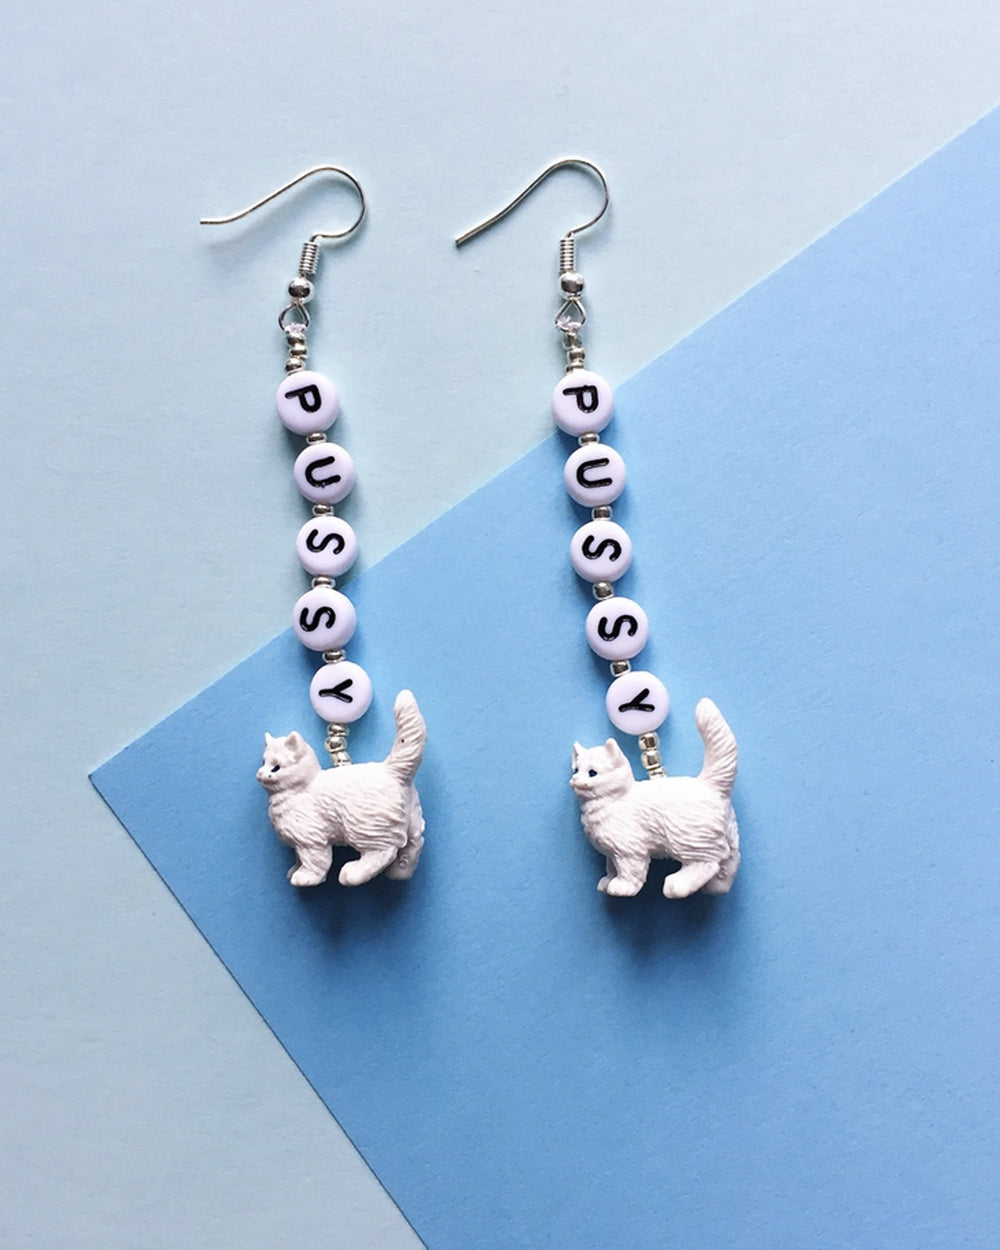 Pussy Earrings